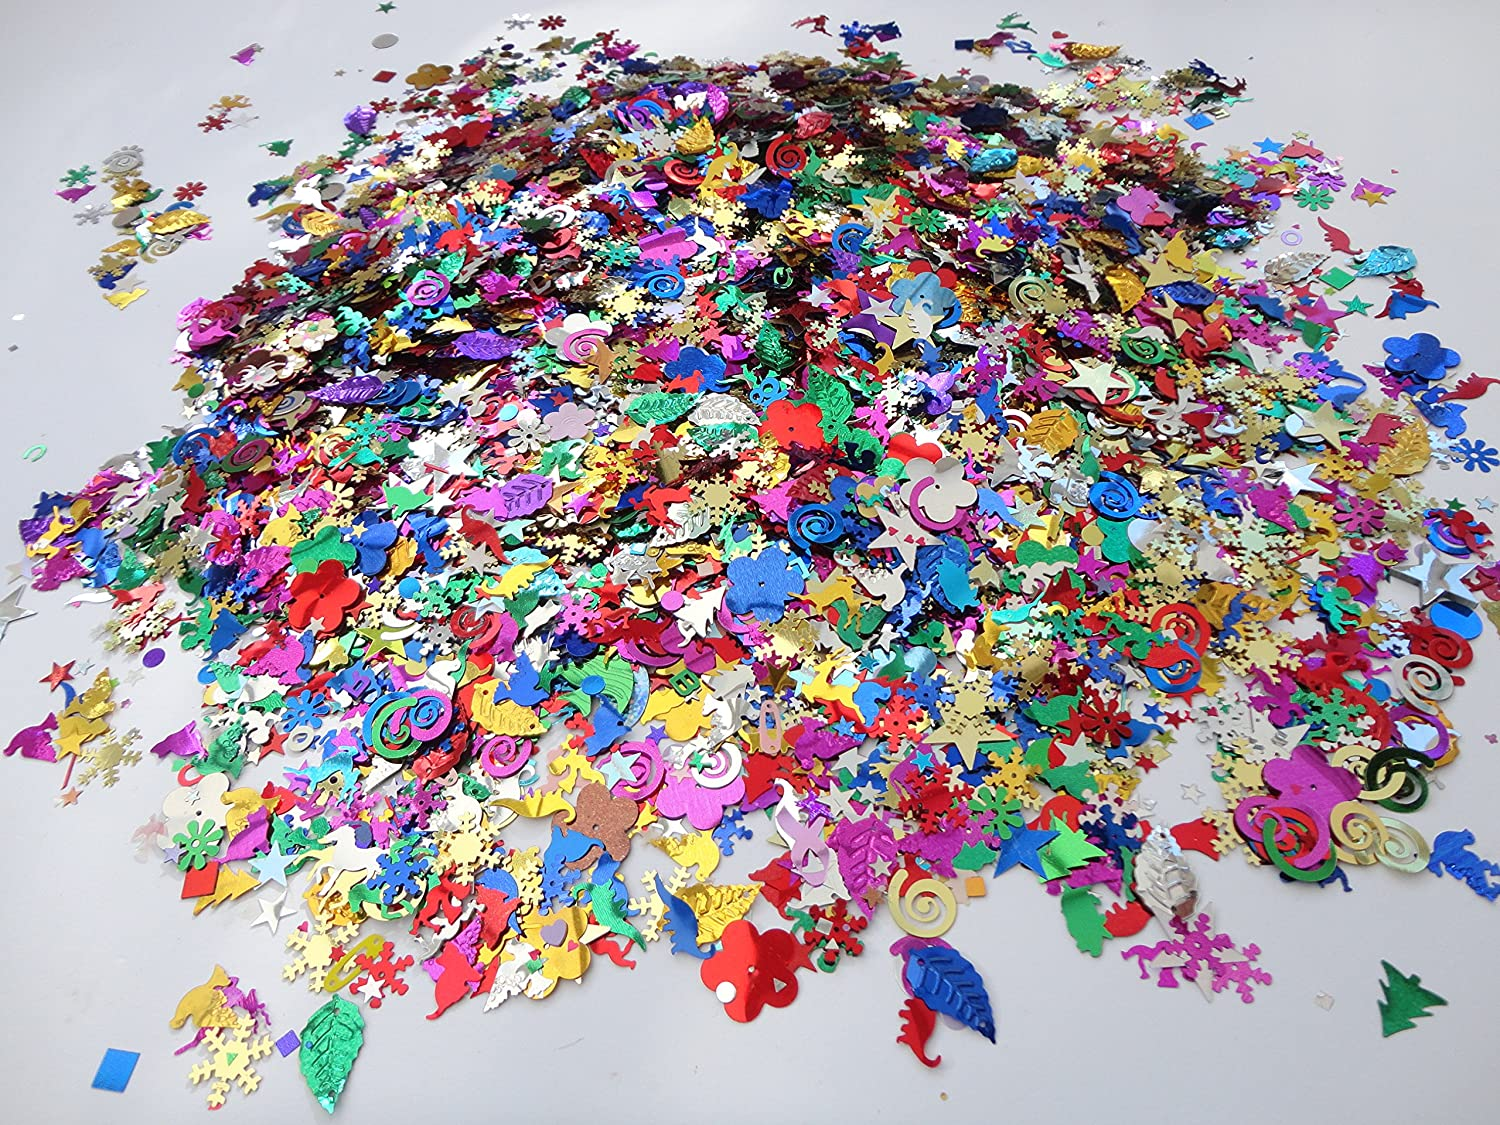 50G Bag Loose Mixed Sized And Design Sequins Craft Sewing 1000+ In Pack a2bsales